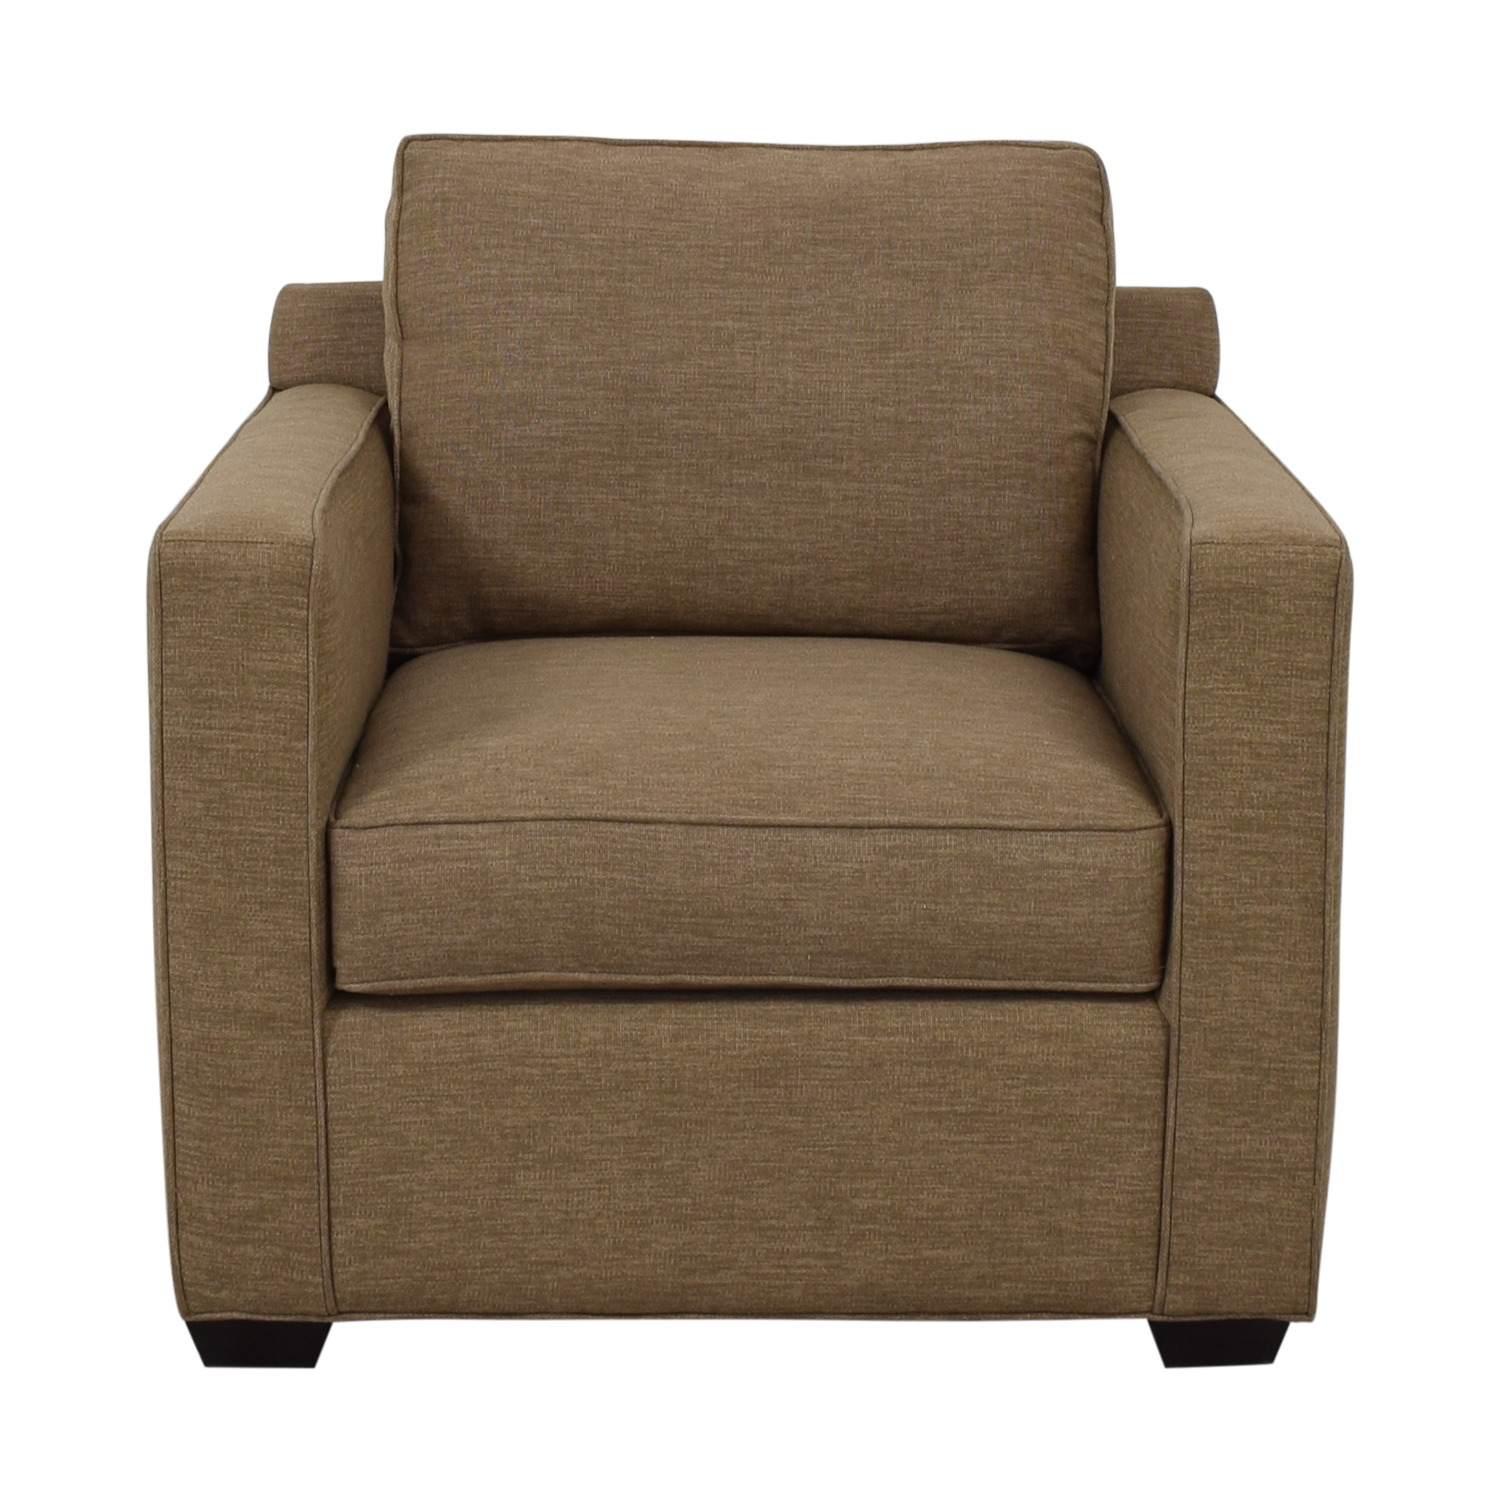 Crate & Barrel Crate & Barrel Davis Armchair price